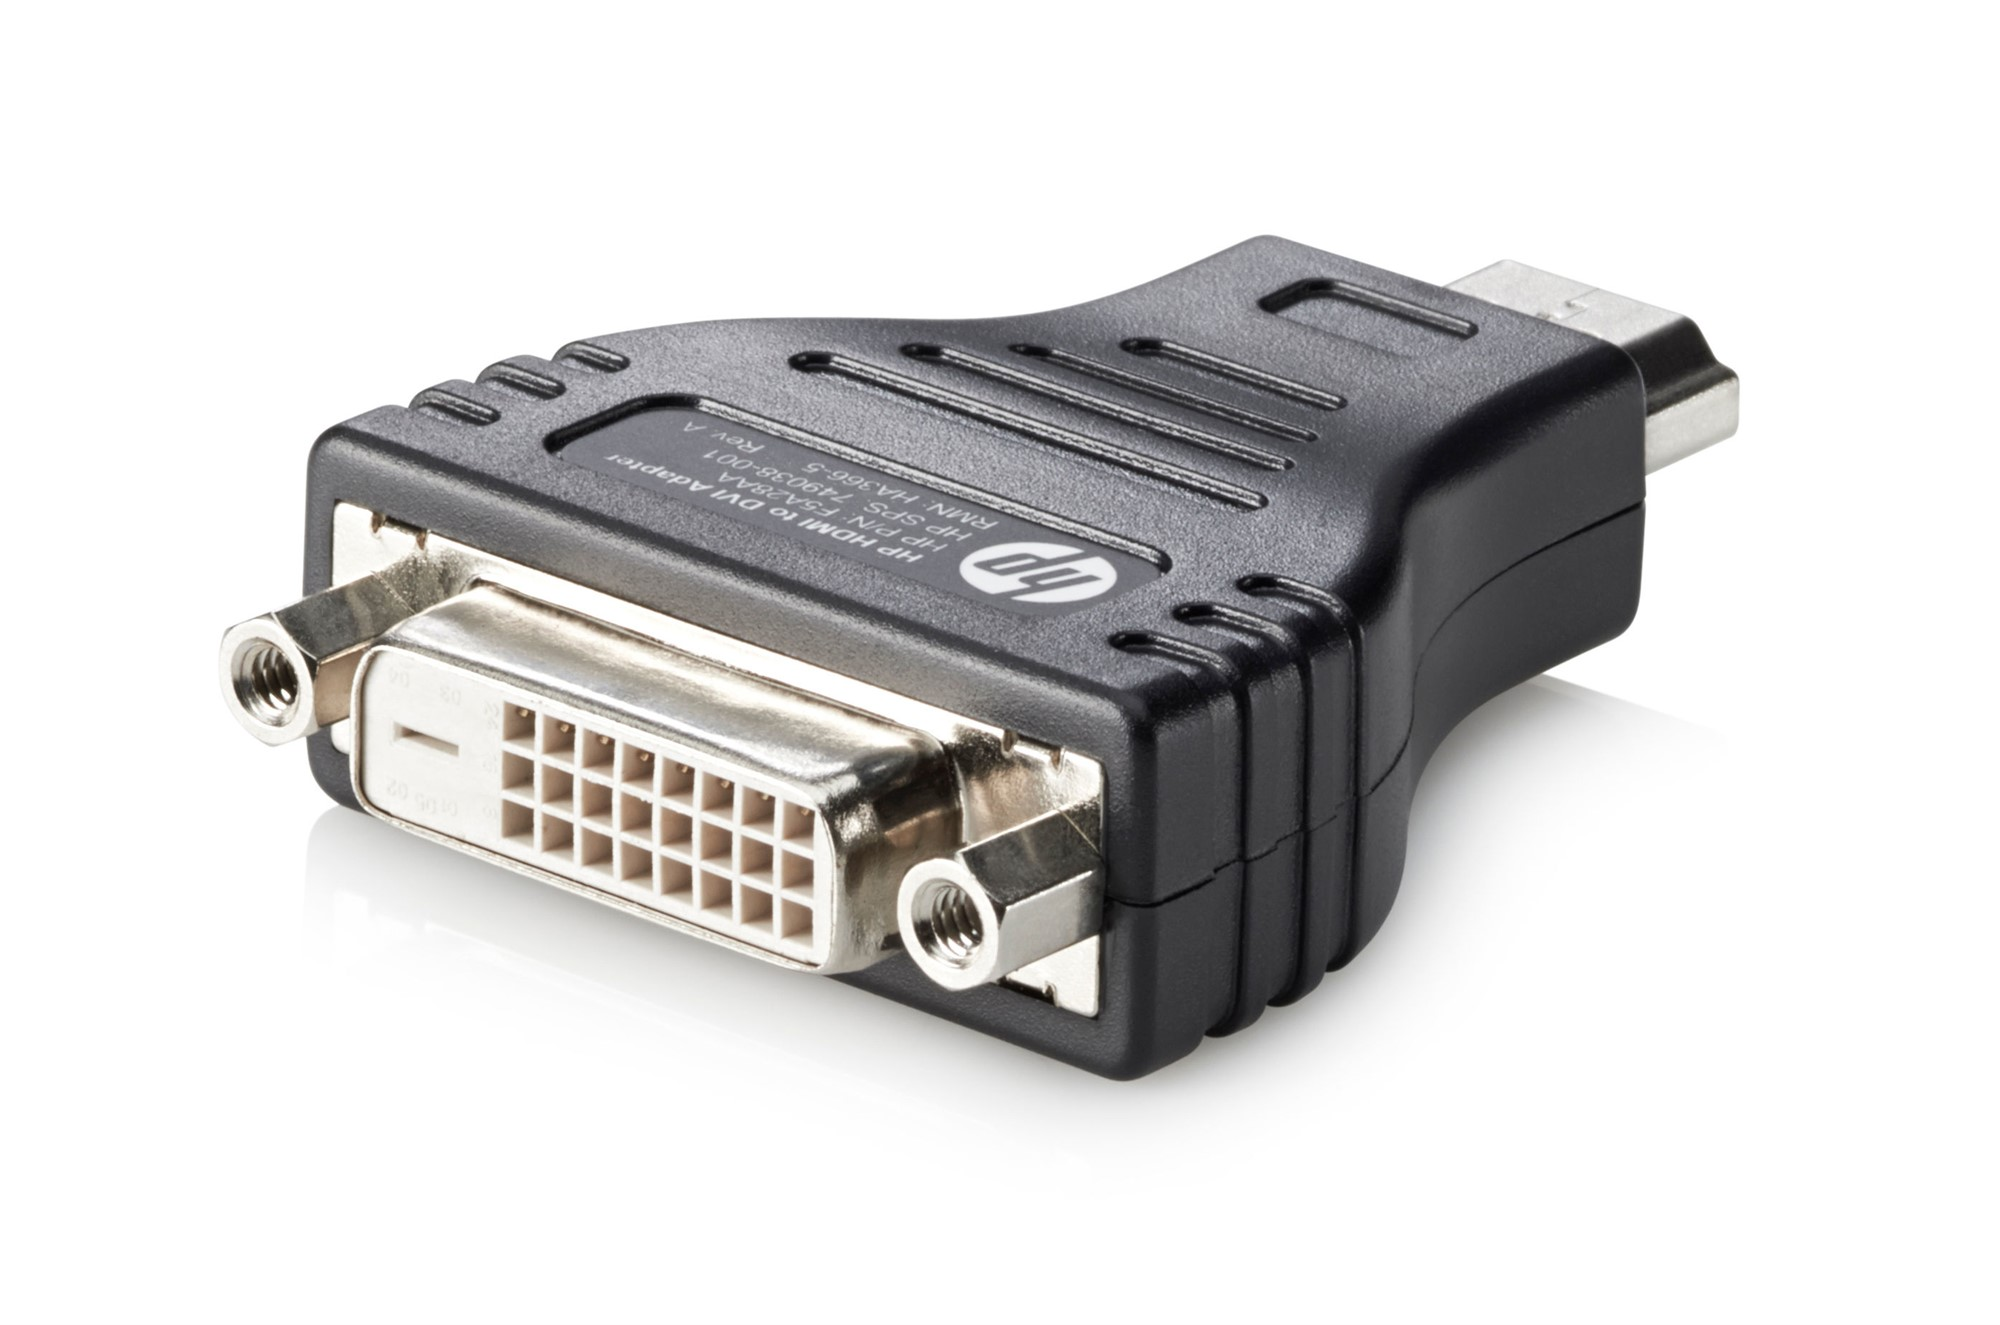 HP F5A28AA HDMI TO DVI ADAPTER